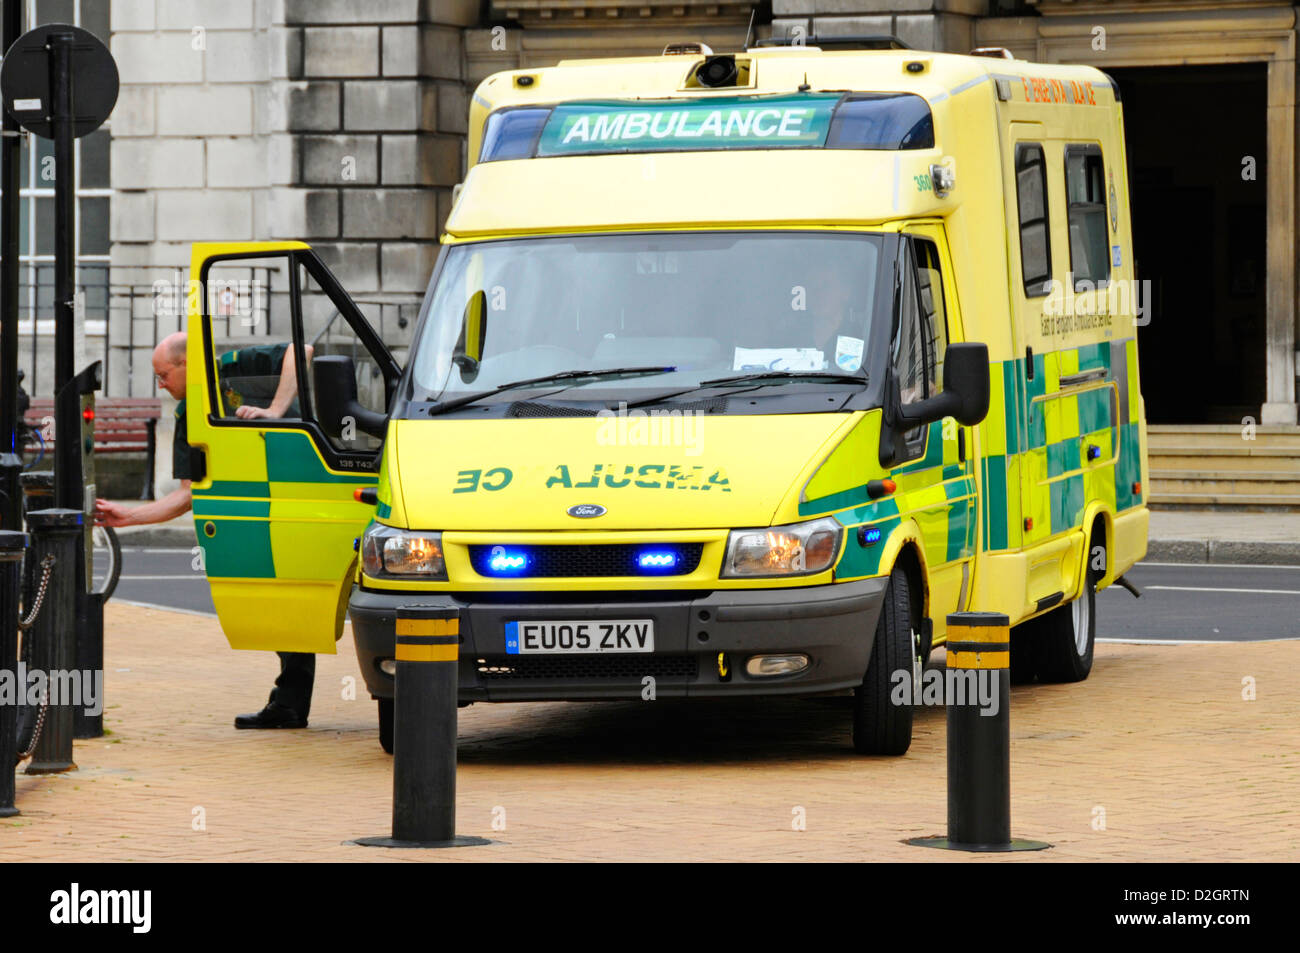 Ambulance driver on emergency call trying to push buttons to gain access to Chelmsford pedestrianised shopping high - Stock Image